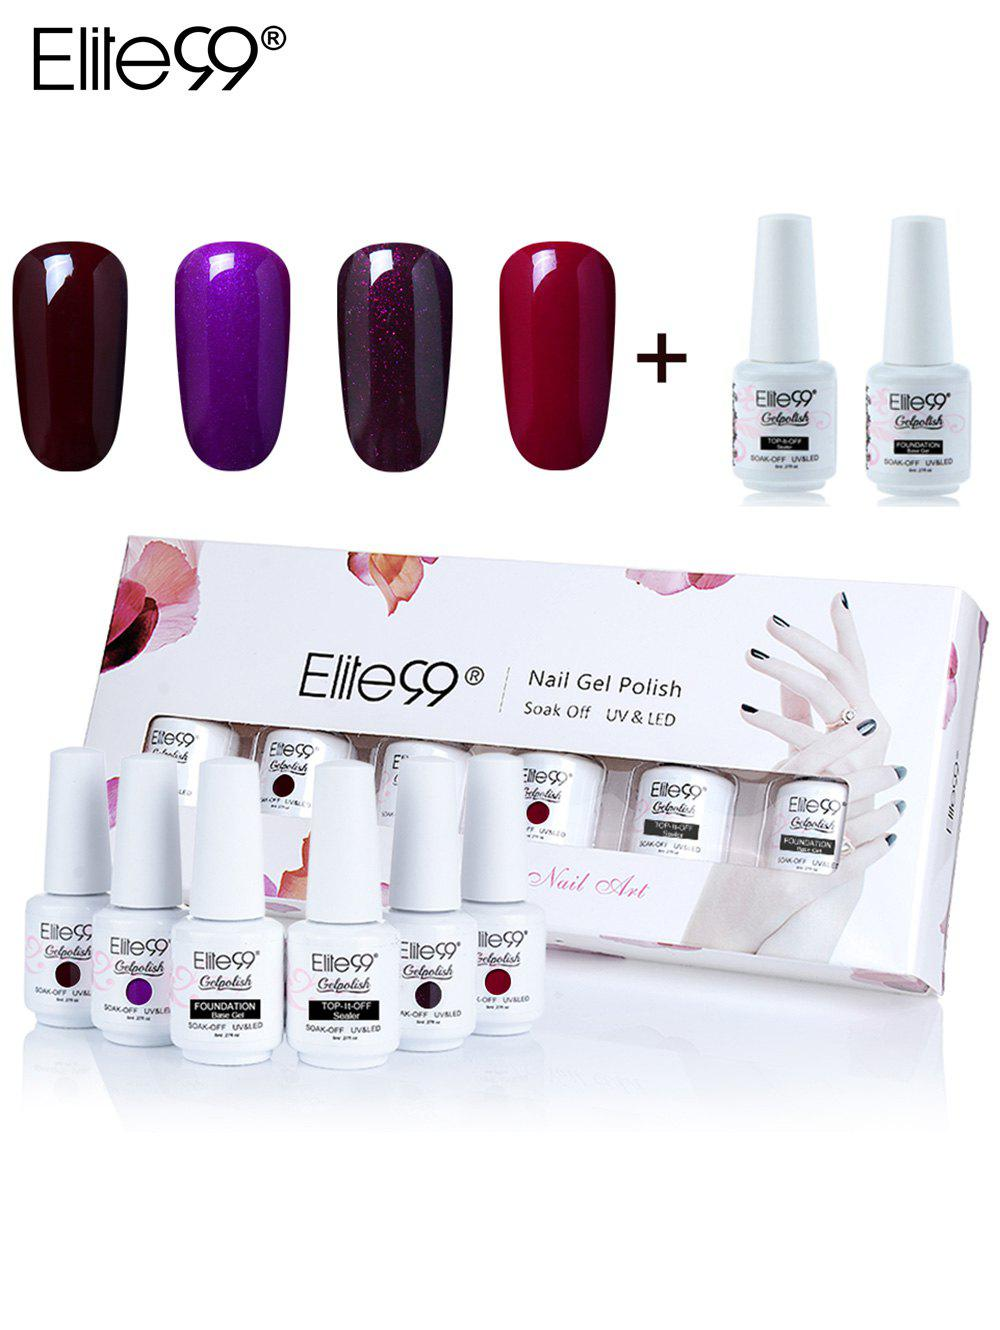 Ensemble de Vernis à Ongles Gel à Tremper Elite99 UV LED -